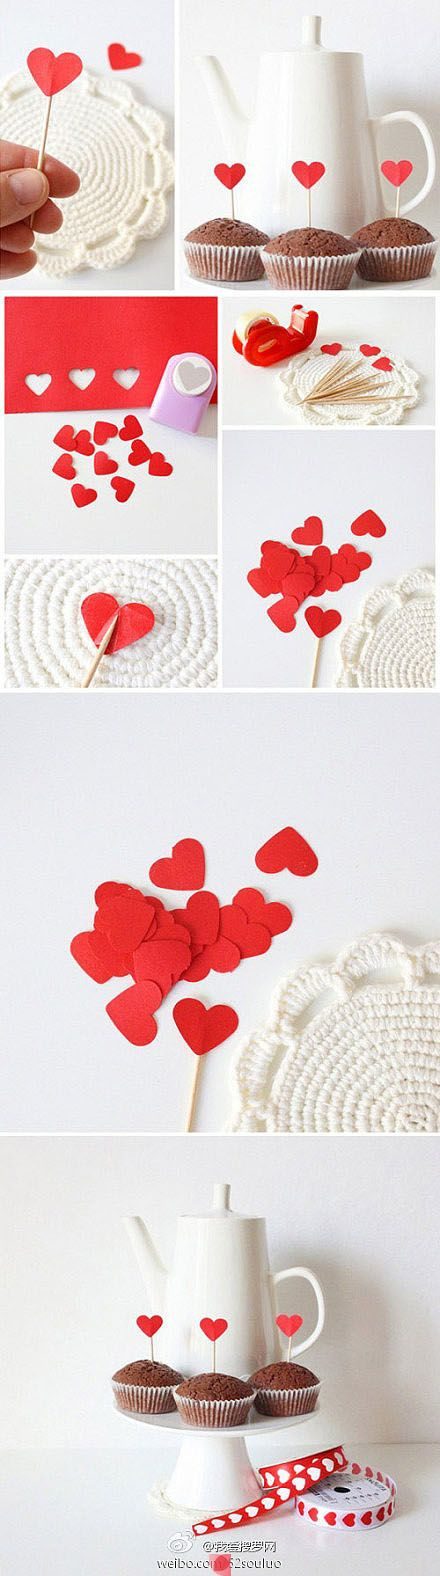 Find Inspiration With Valentines  Wall Art And Gift Ideas-homesthetics.net (101)